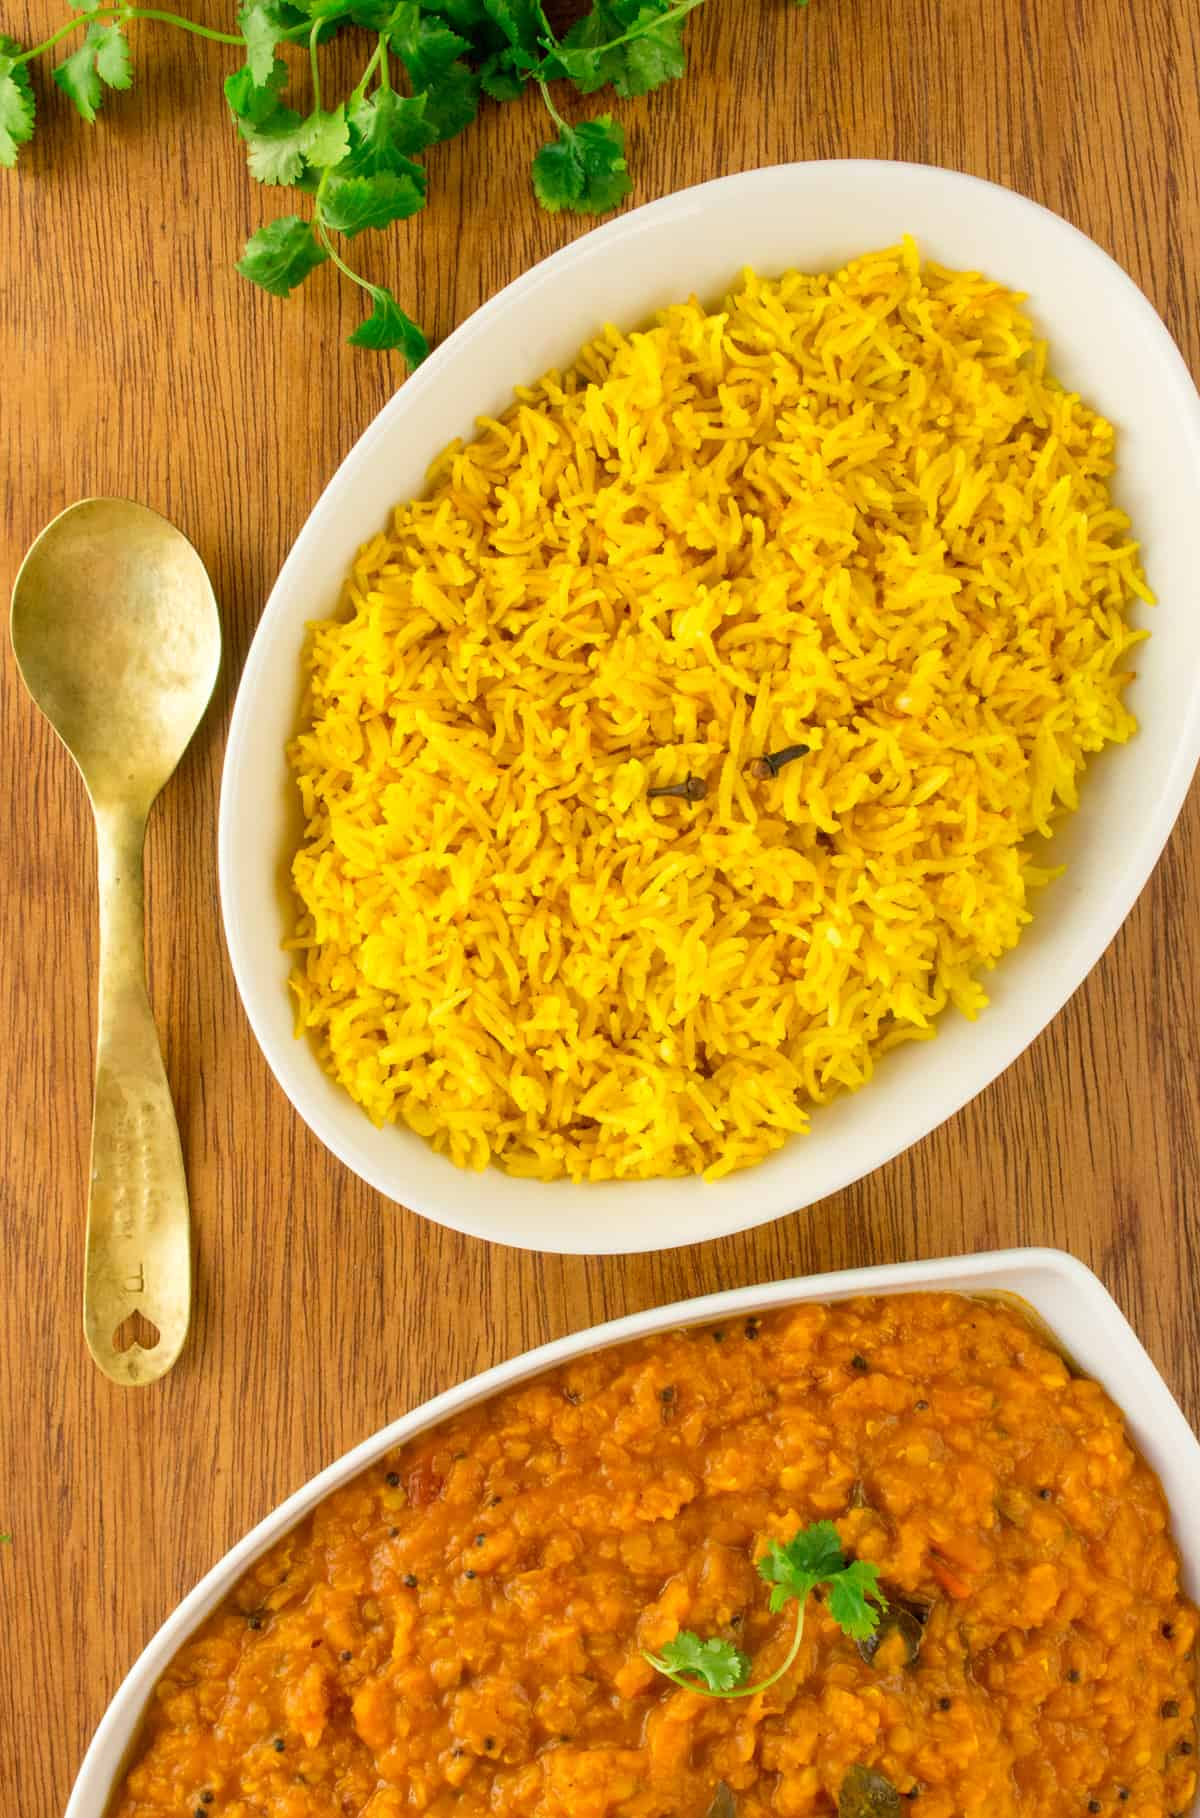 An oval dish of yellow rice, next to a brass spoon, dish of lentil dal and some coriander leaves.